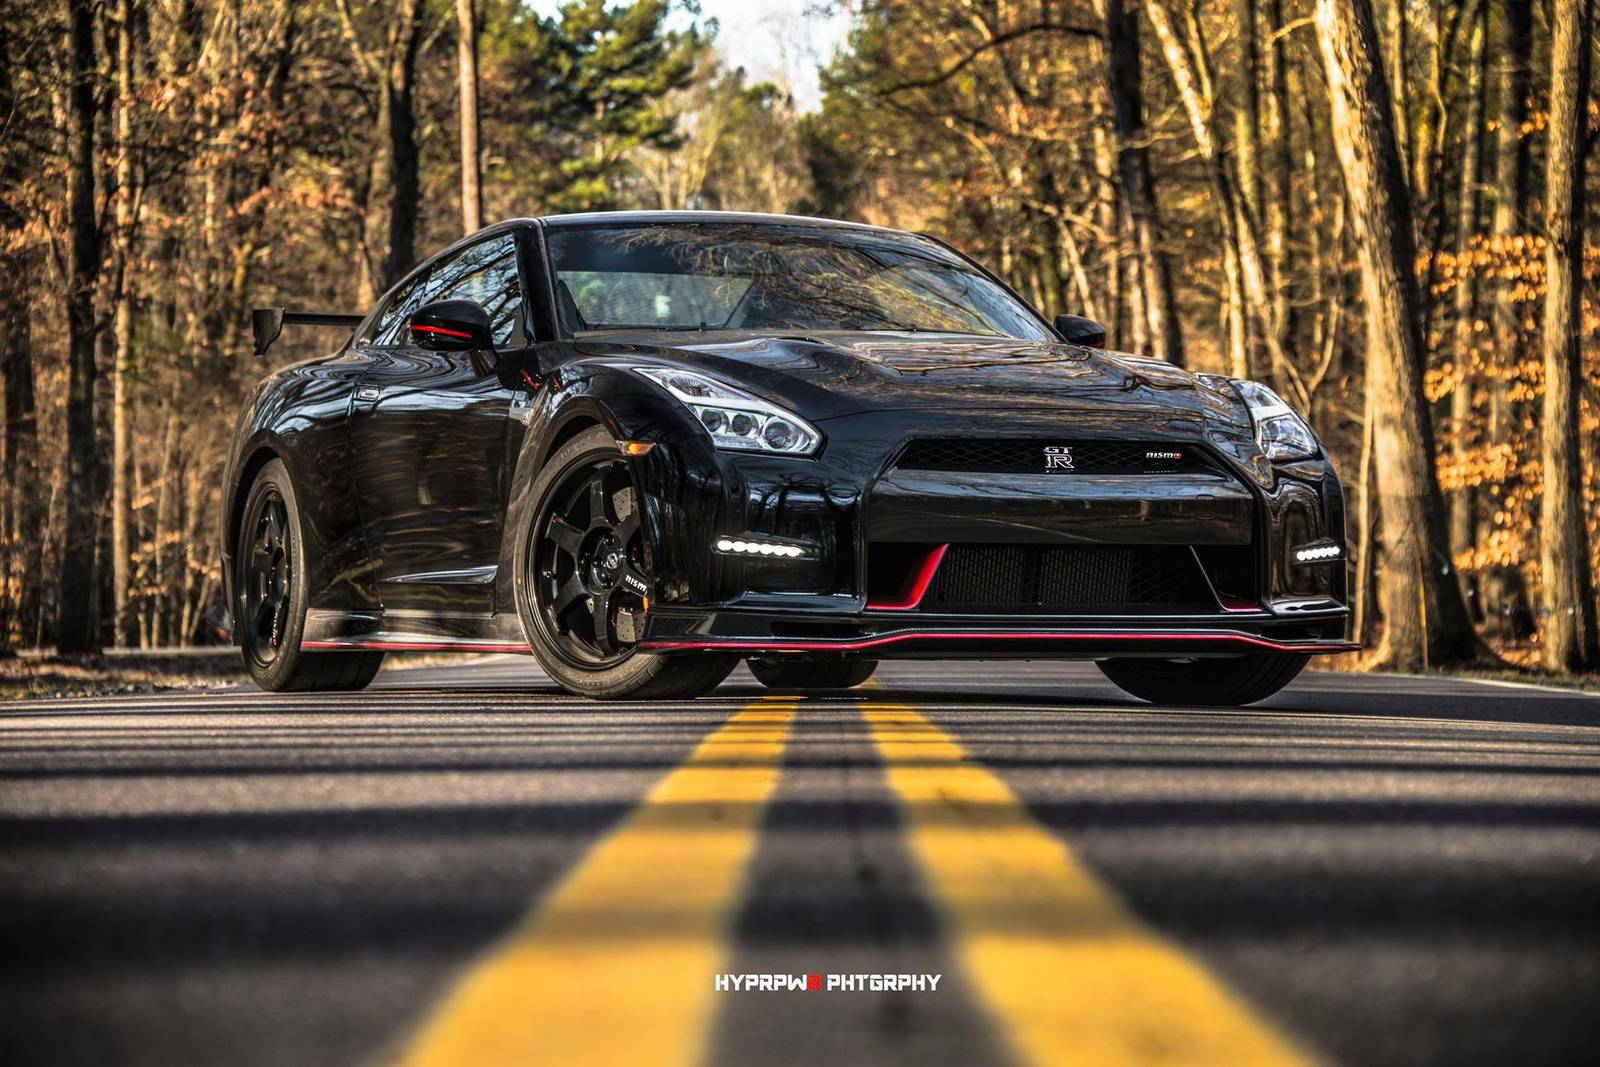 stunning black 2015 nissan gt r nismo photoshoot gtspirit. Black Bedroom Furniture Sets. Home Design Ideas